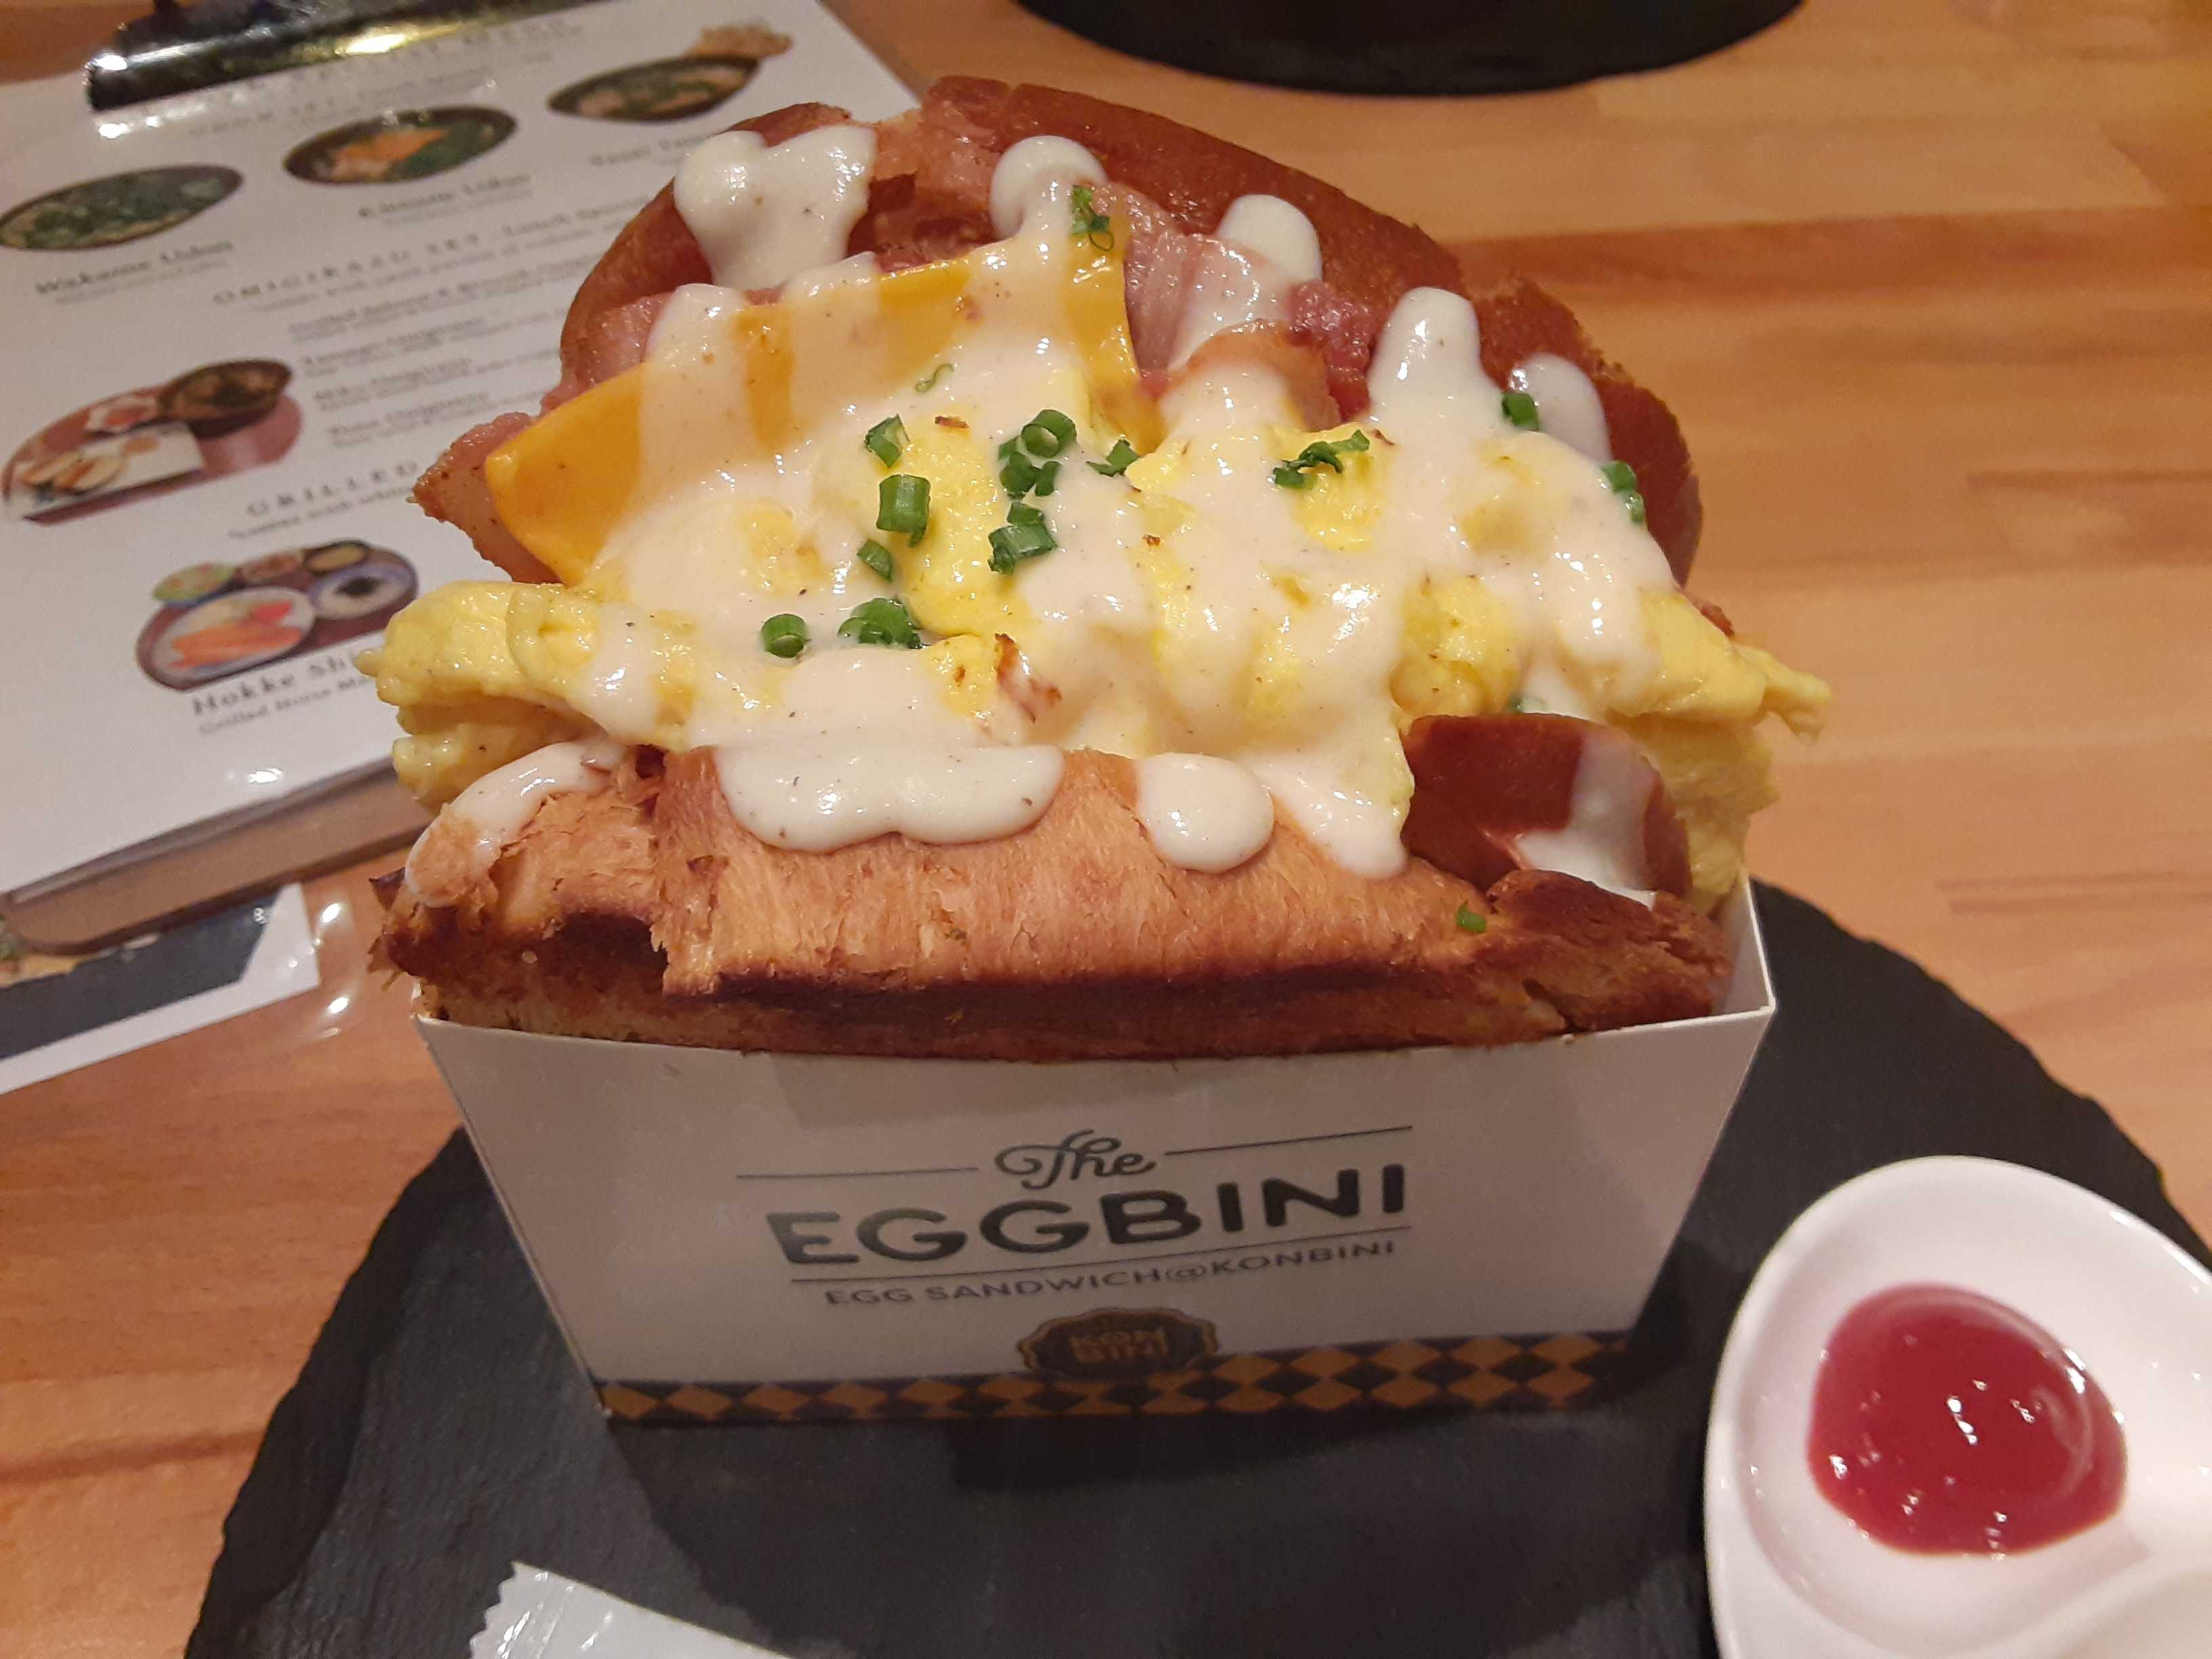 The Eggbini from Konbini in New York City (InsideHook)